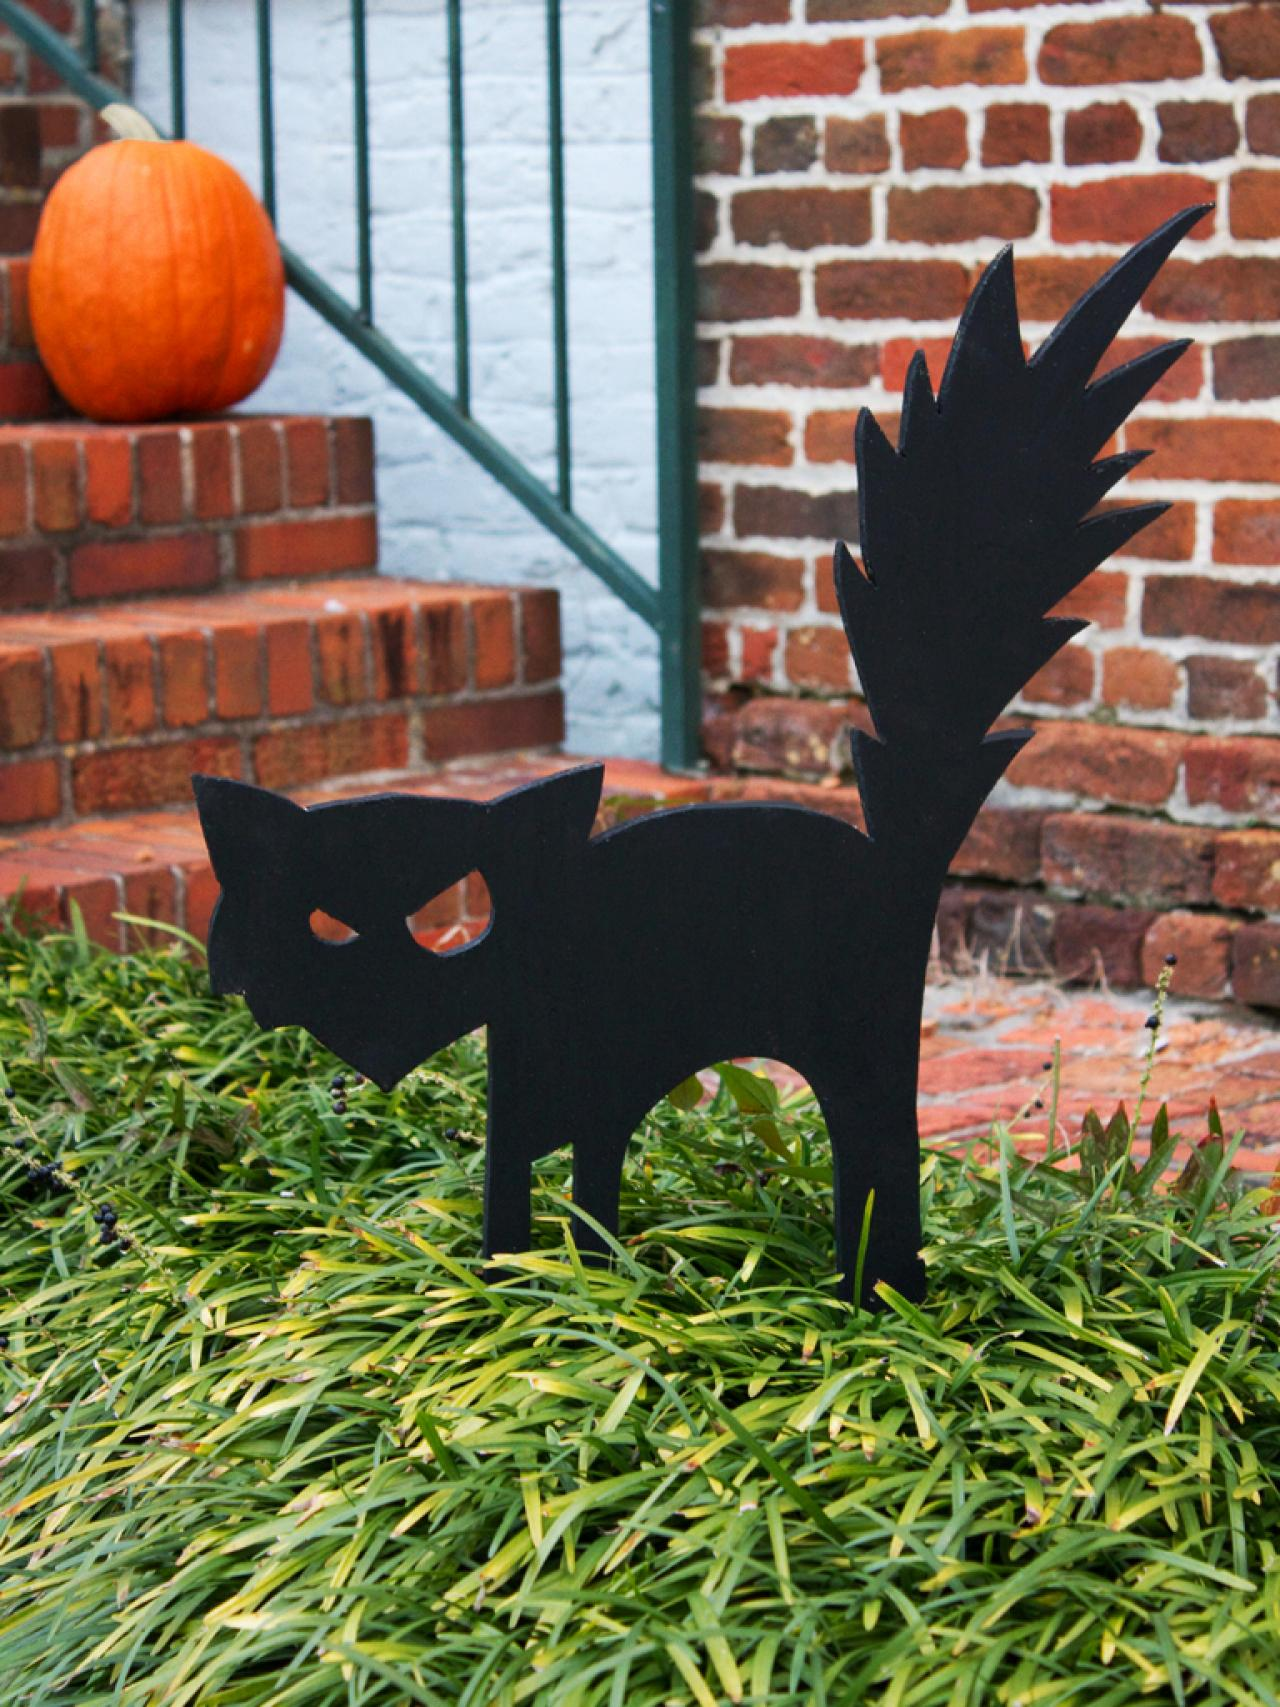 Easy homemade halloween decorations - Black Cat Outdoor Halloween Decoration